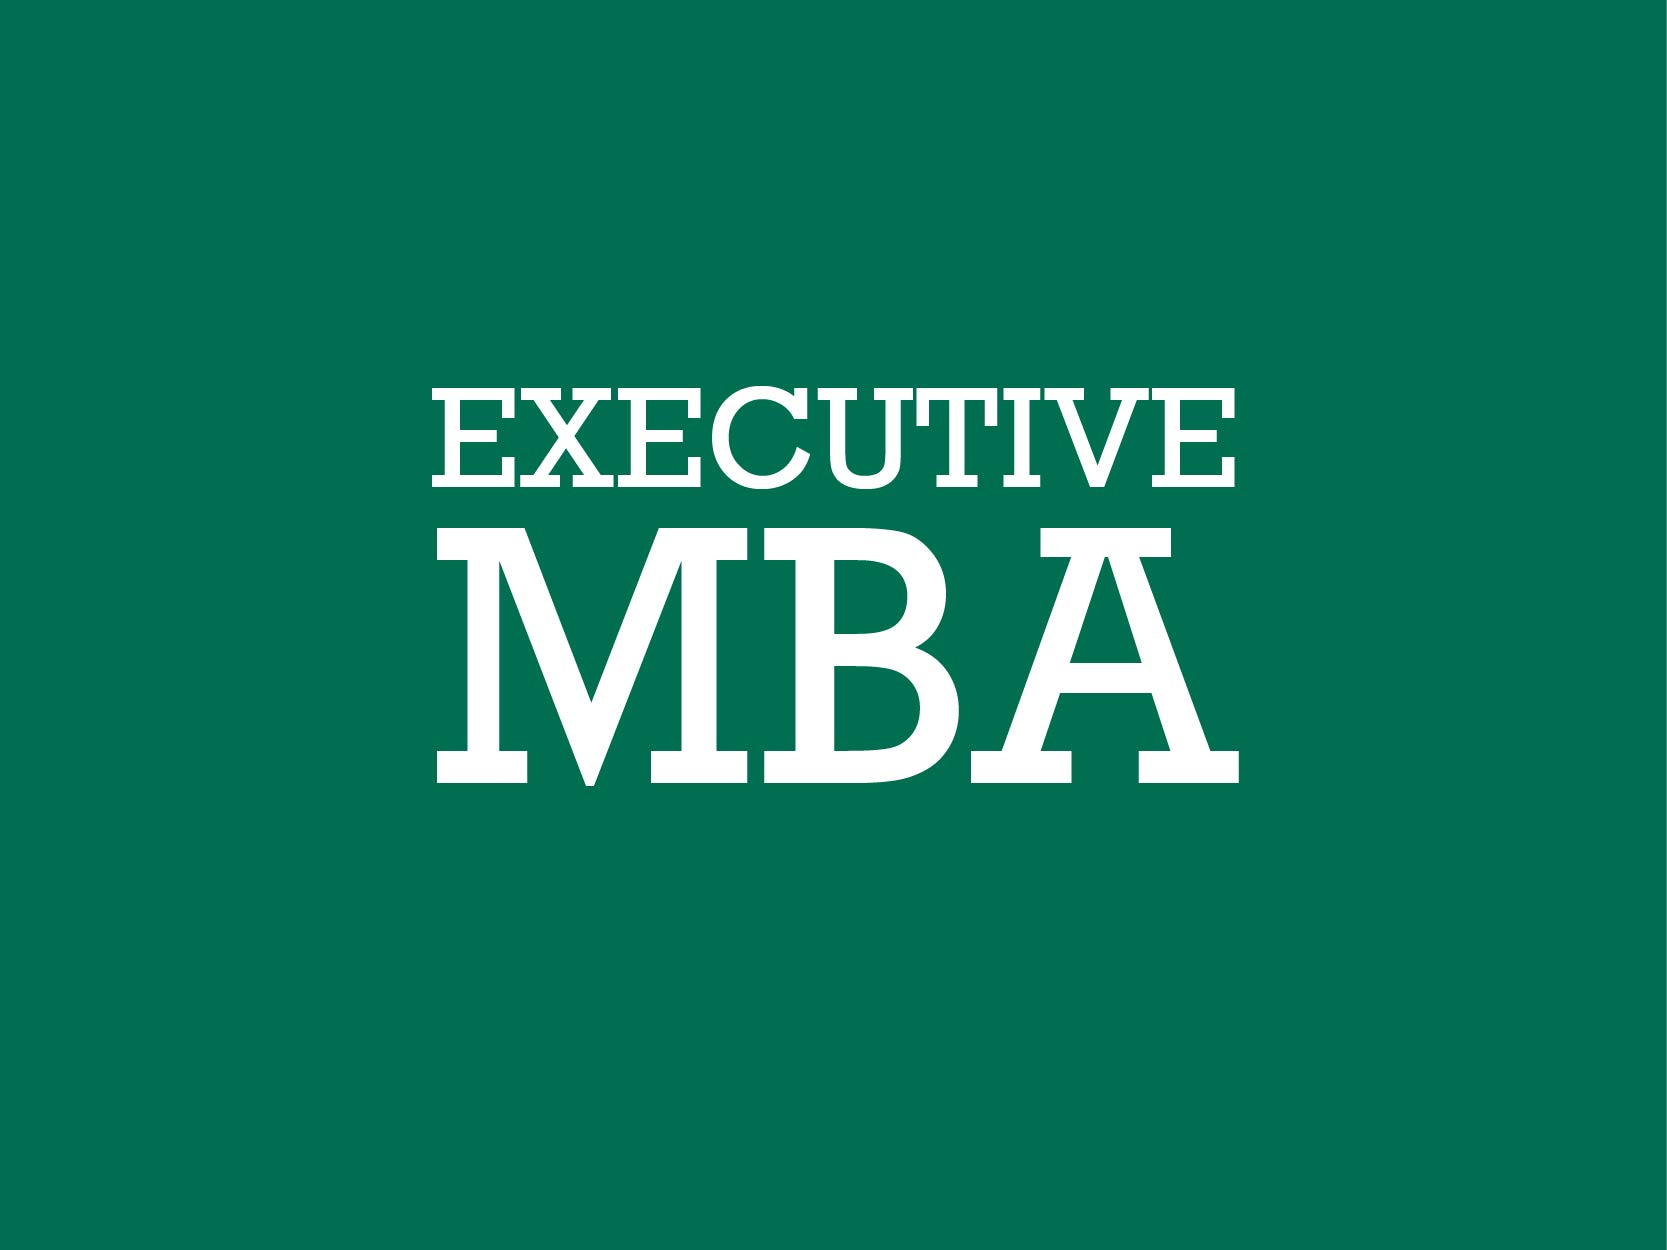 Executive MBA Graduation Portal